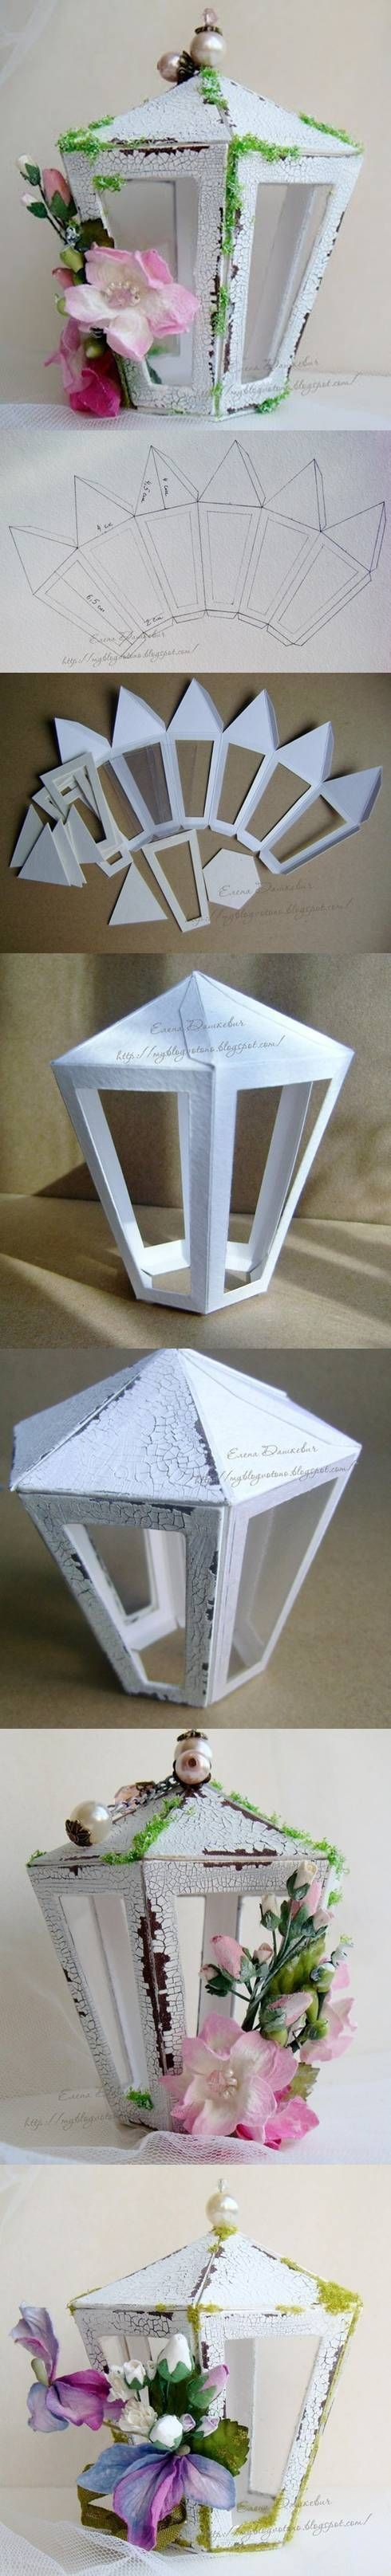 DIY Cardboard Latern Template DIY Projects | UsefulDIY.com Follow Us on Facebook ==> http://www.facebook.com/UsefulDiy